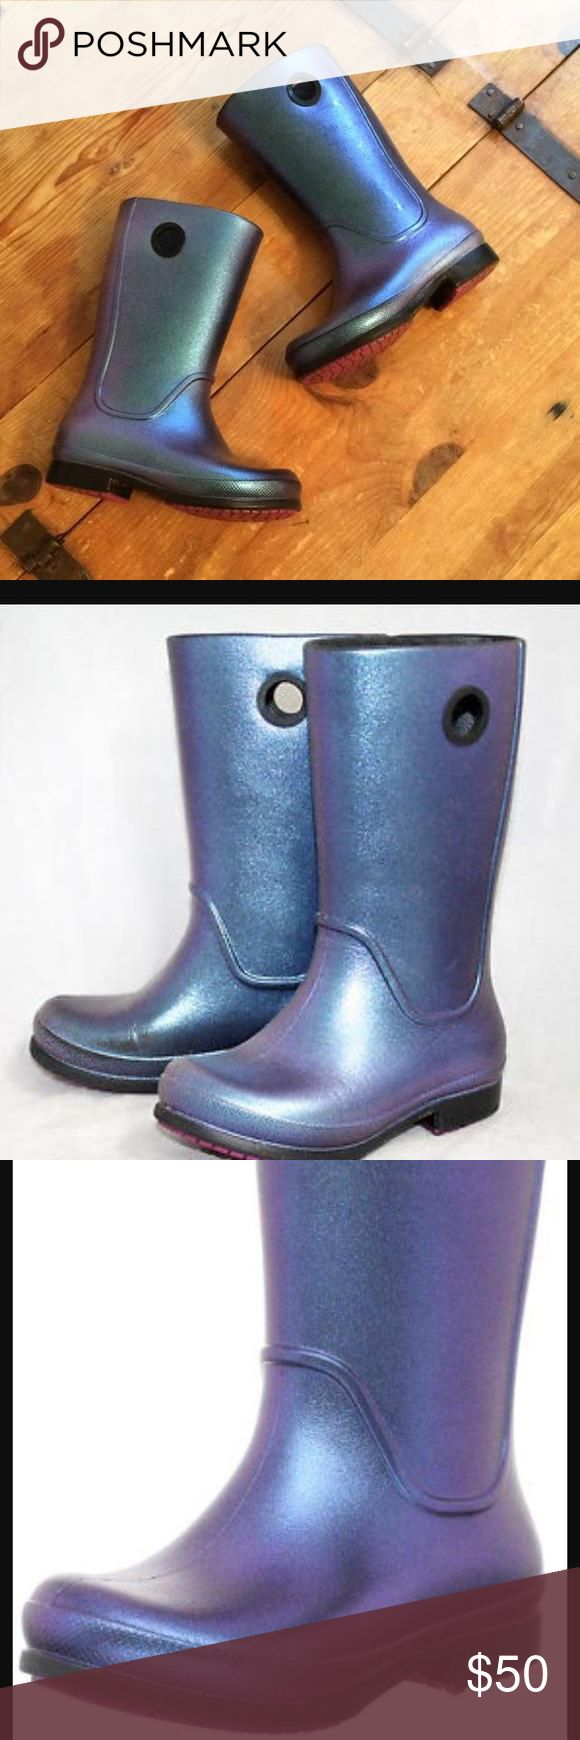 Croc wellie rain boots Bring a little sparkle & shine to that rainy day with these awesome iridescent purple wellies in patented croc technology. Amazing, like new condition, I paid over $80 for these brand new. Product Description Waterproof rain boot. Features an iridescent finish. Fully molded Croslite™ material footbed provides lightweight cushioning and comfort. Durable rubber outsole for added traction and grip. Measurements: Heel Height: 3⁄4 in Weight: 6 oz Circumference: 11 1⁄2 in…